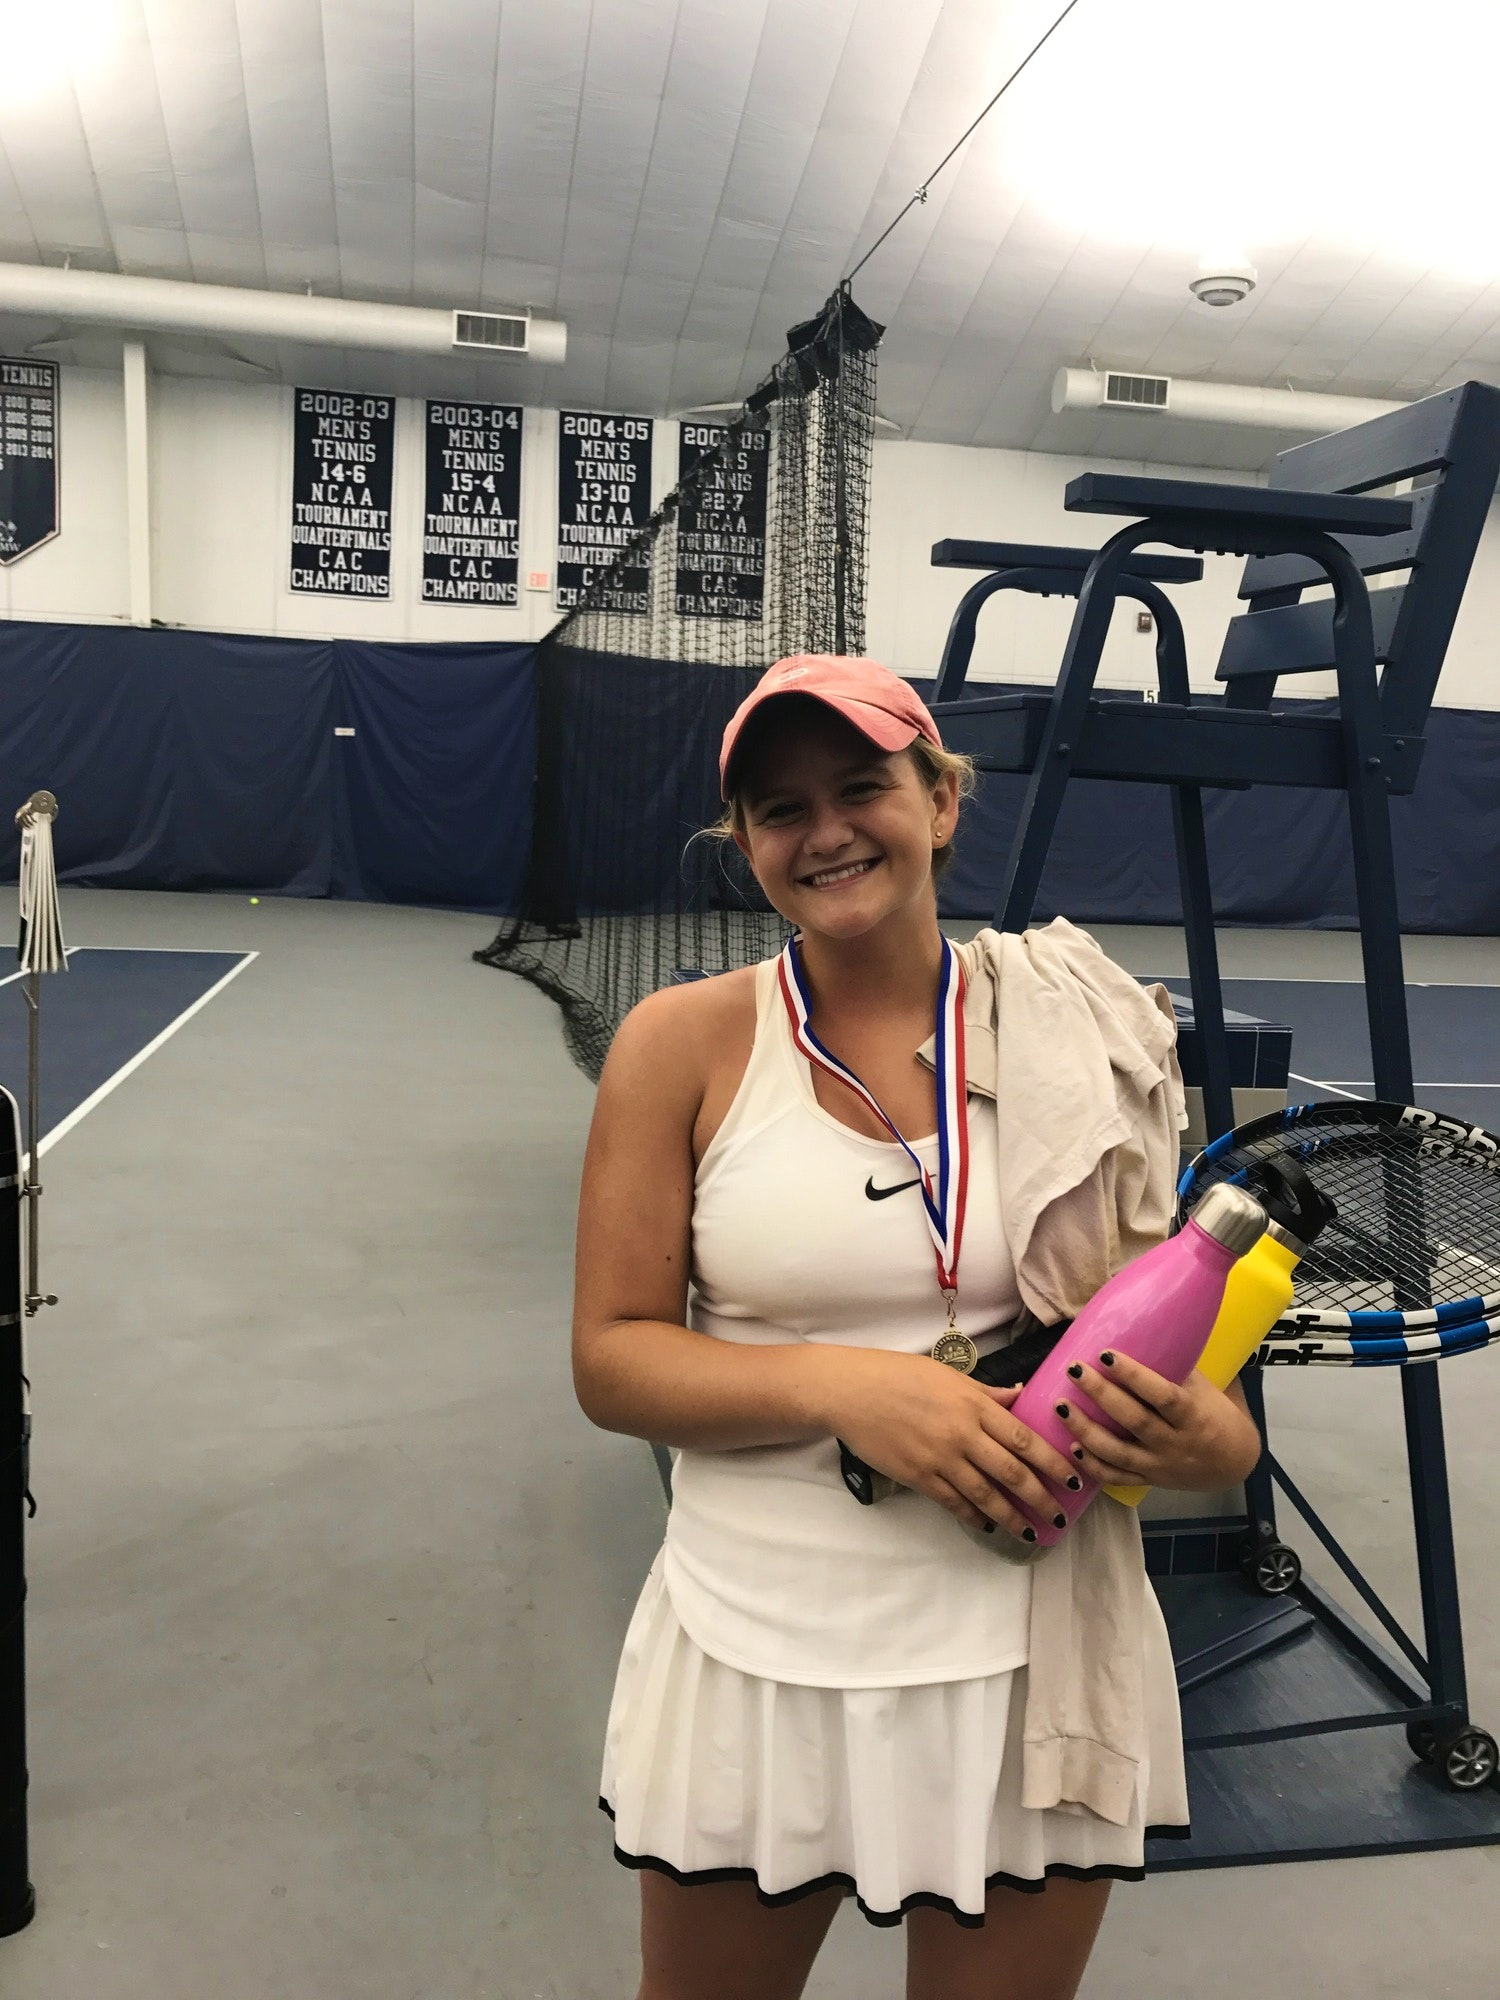 Lucy C. teaches tennis lessons in Fredericksburg, VA